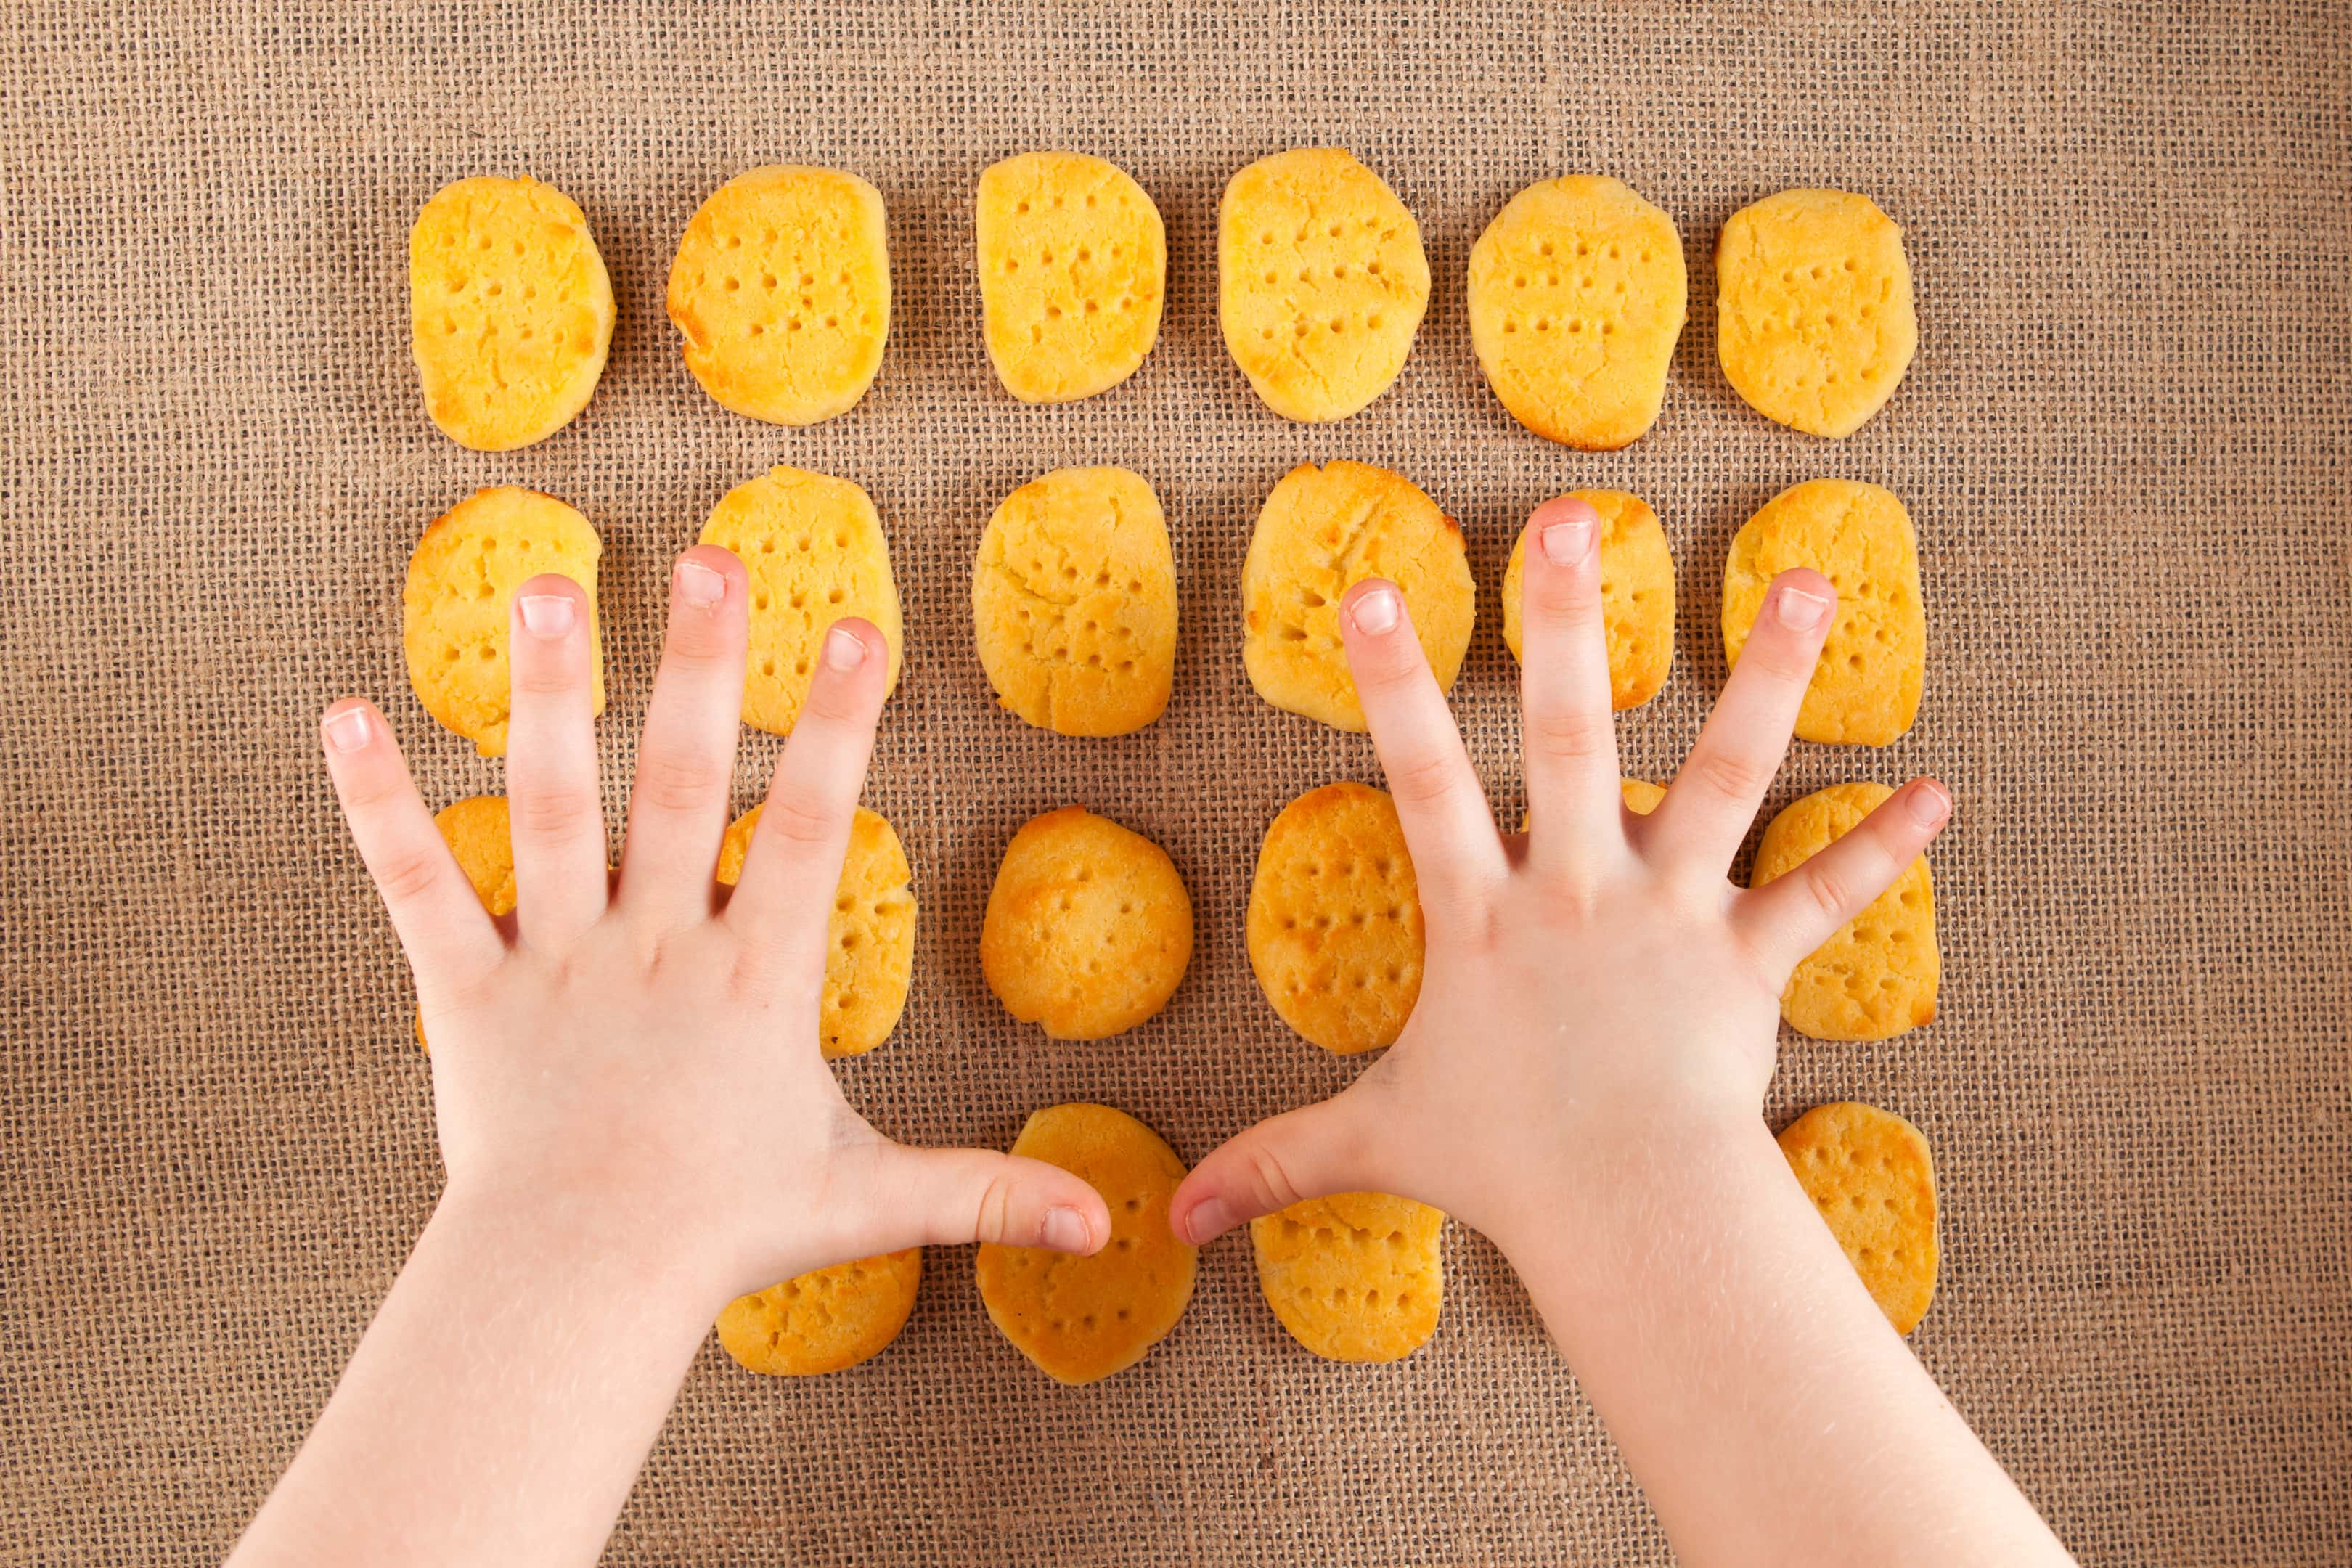 Child's hands reach for Chickpea Flour Biscuits - Vegan and Gluten-Free.